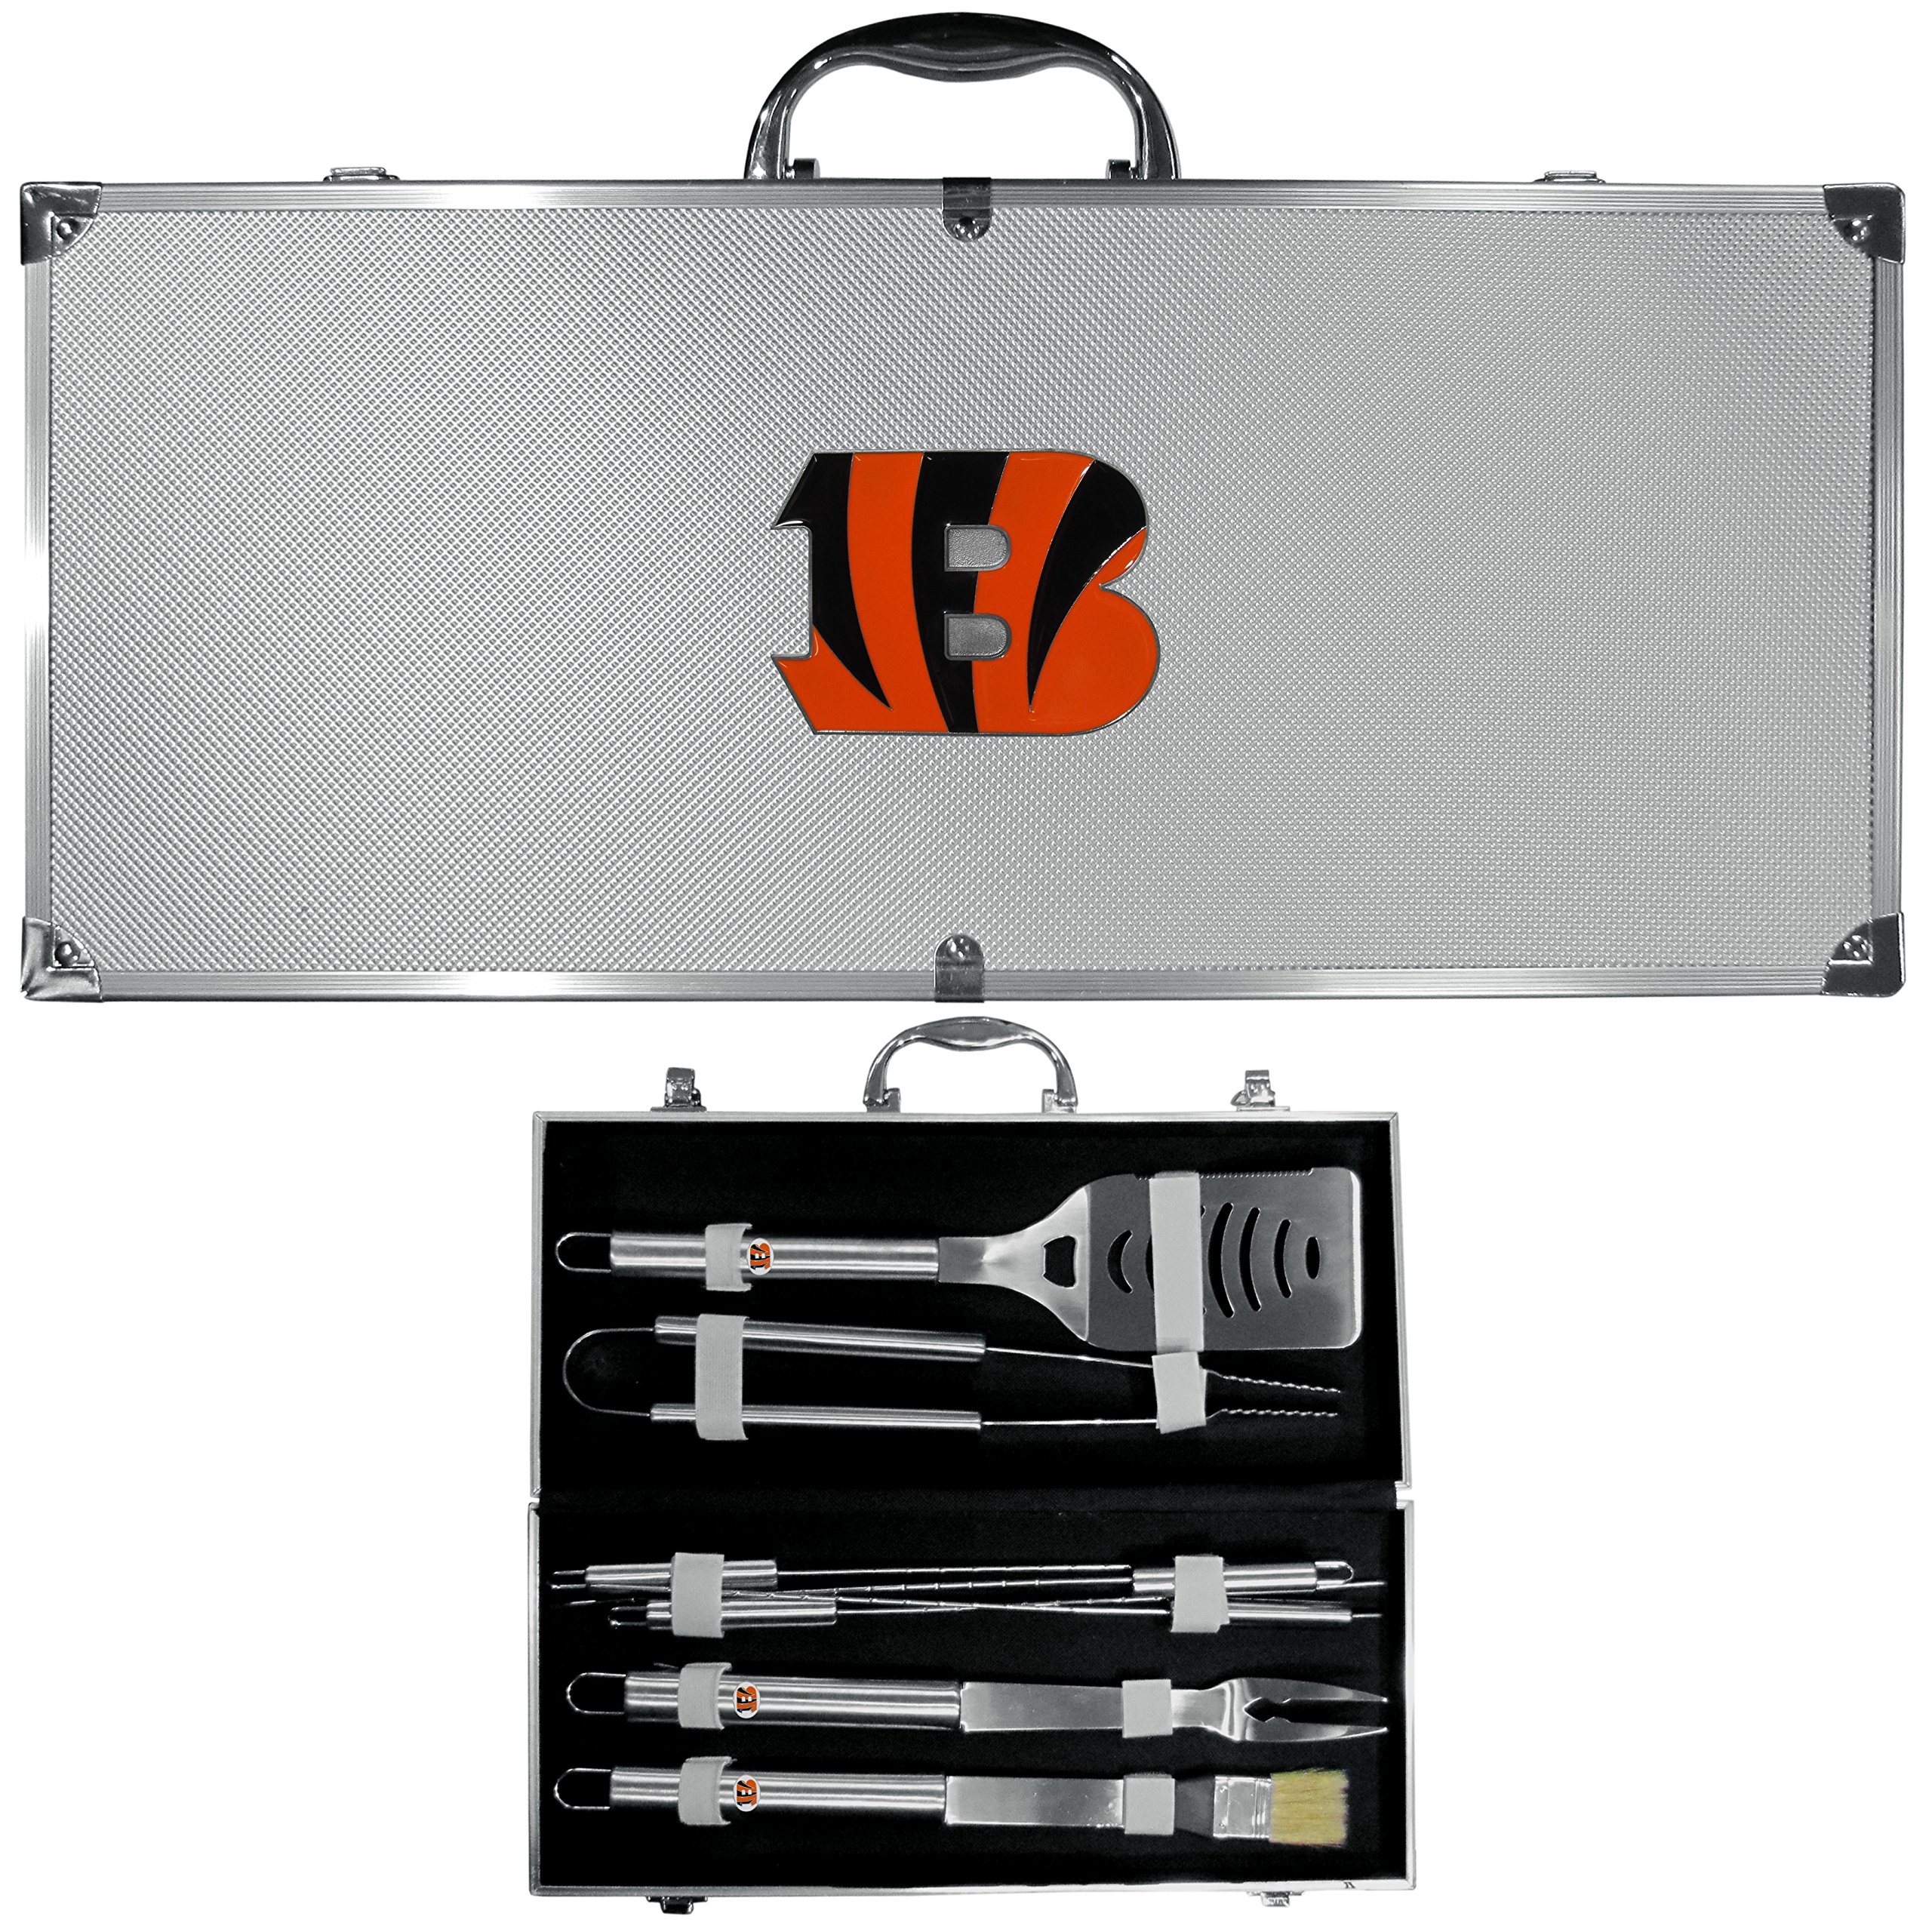 Siskiyou NFL Cincinnati Bengals 8-Piece Barbecue Set w/Case